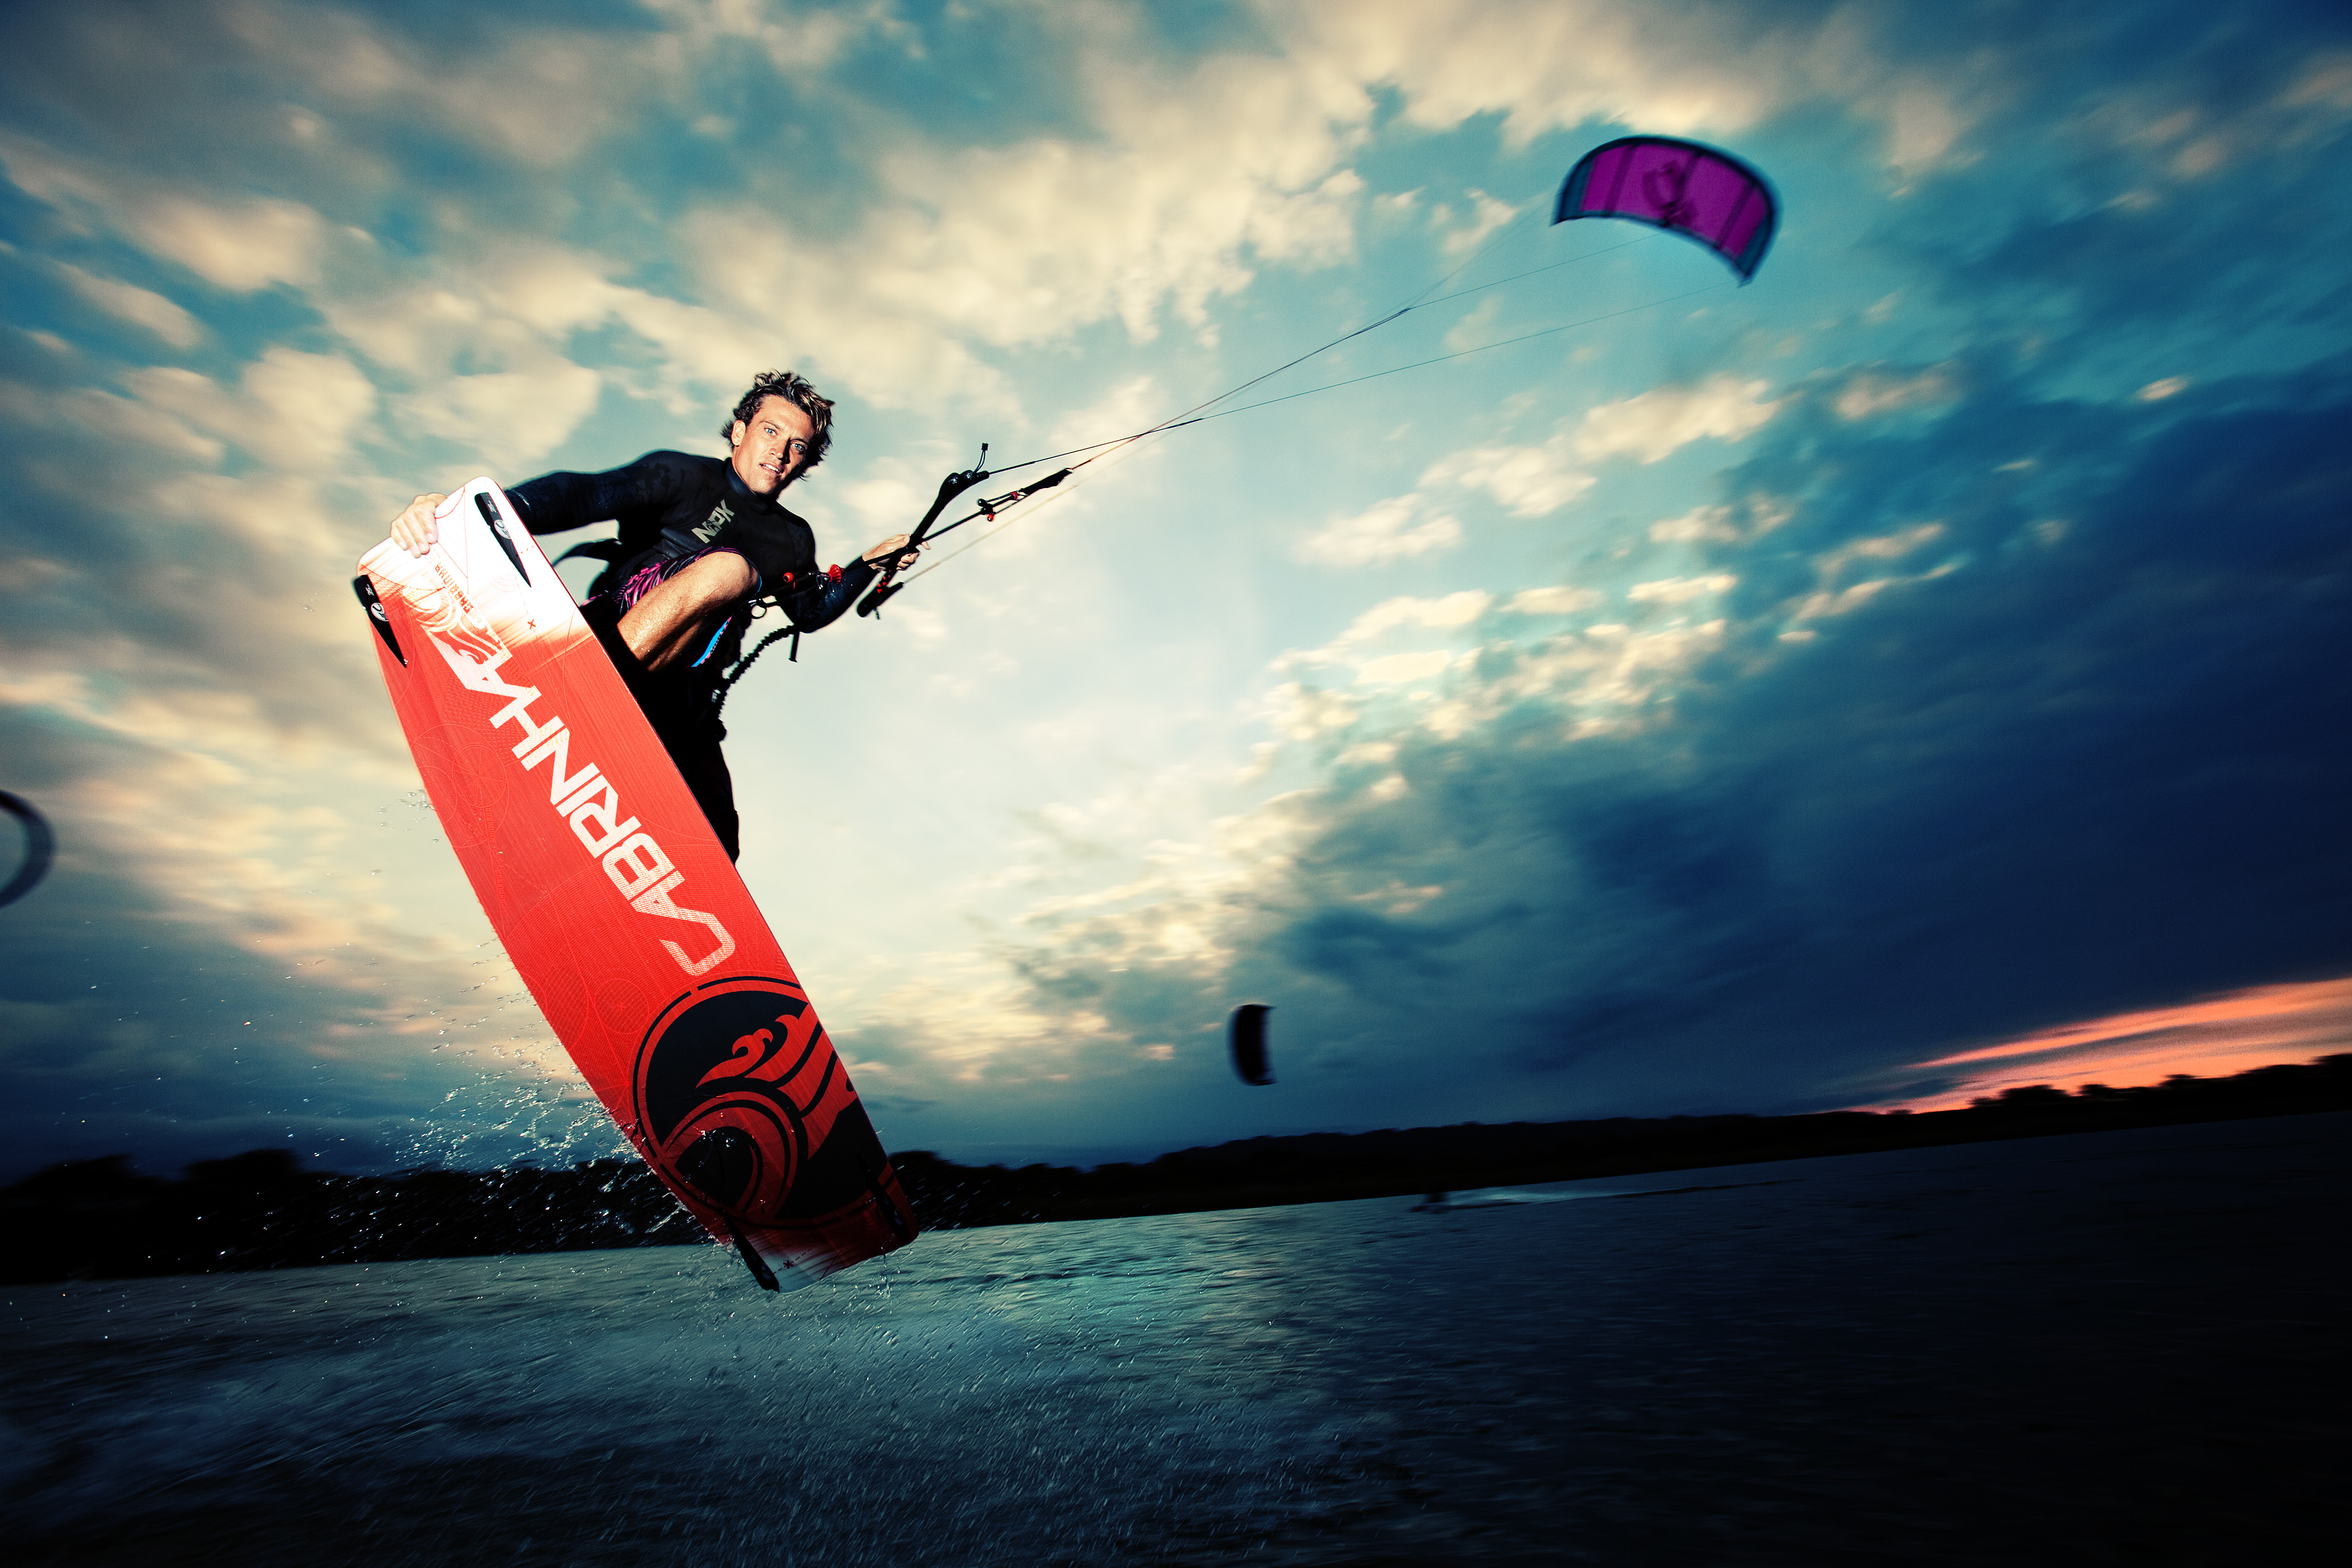 kitesurf wallpaper image - Damien LeRoy with a tailgrab at dusk on his Cabrinha kites gear - in resolution: Original 4096 X 2731